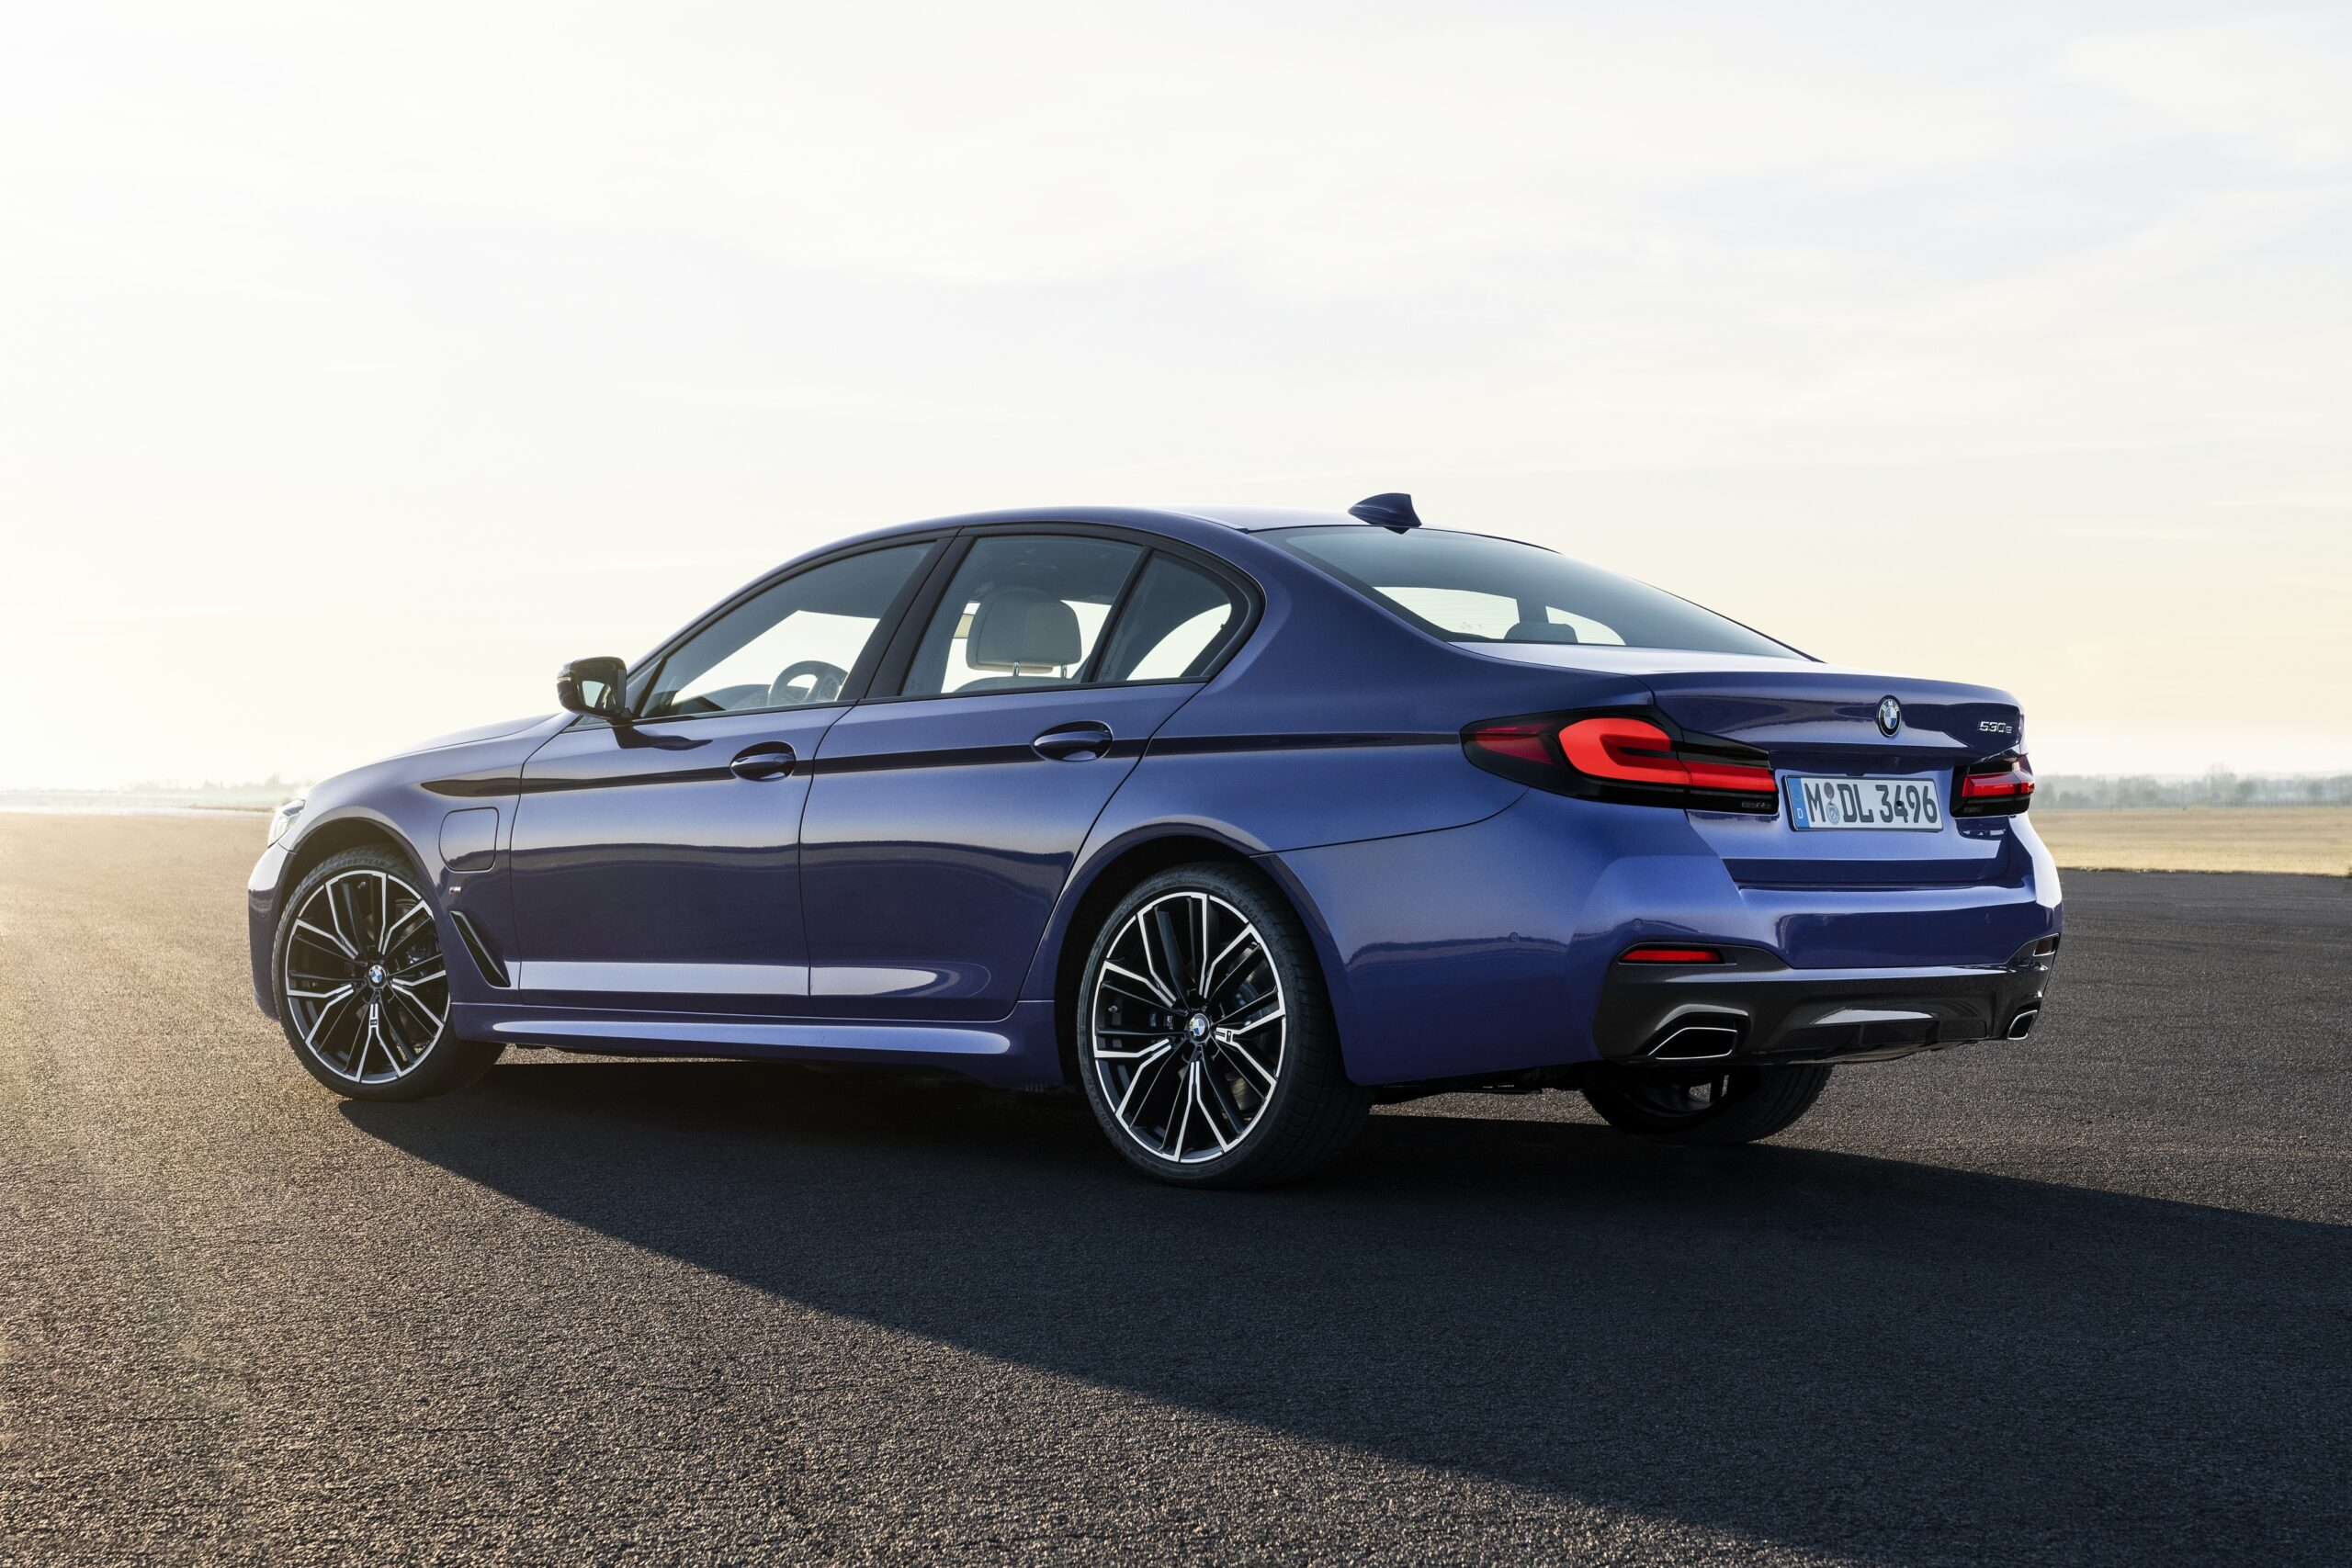 bmw packs the new 2021 5 series with all its best tech » eftm